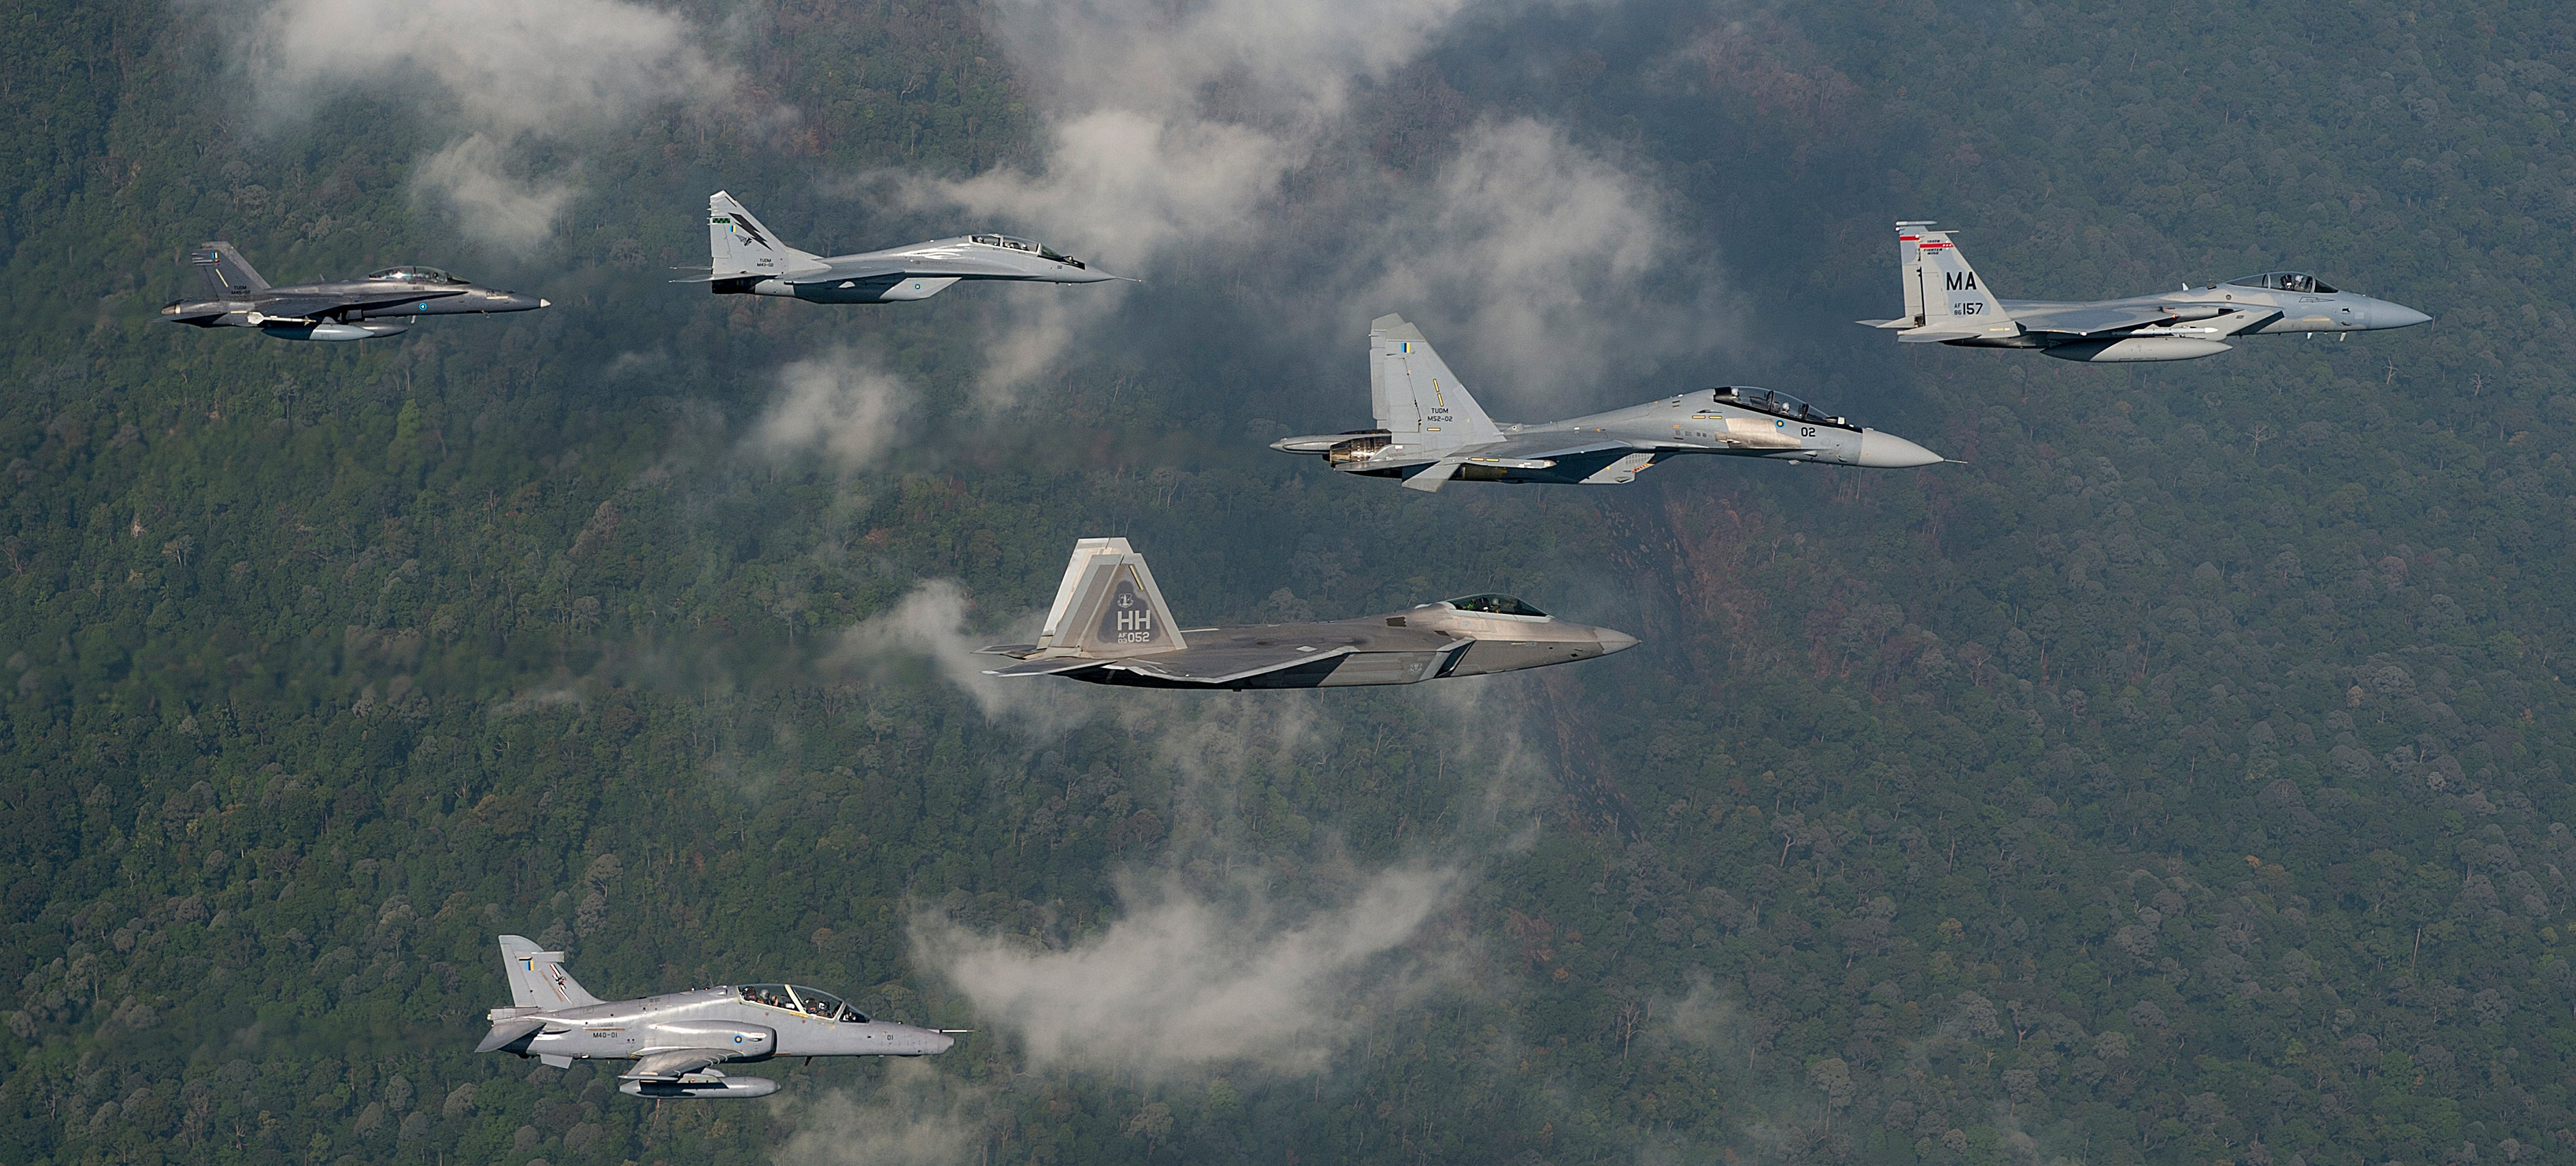 Tyler Car And Truck >> US Air Force's F-22s & F-15s Just Battled One Of Their Most Feared Foes